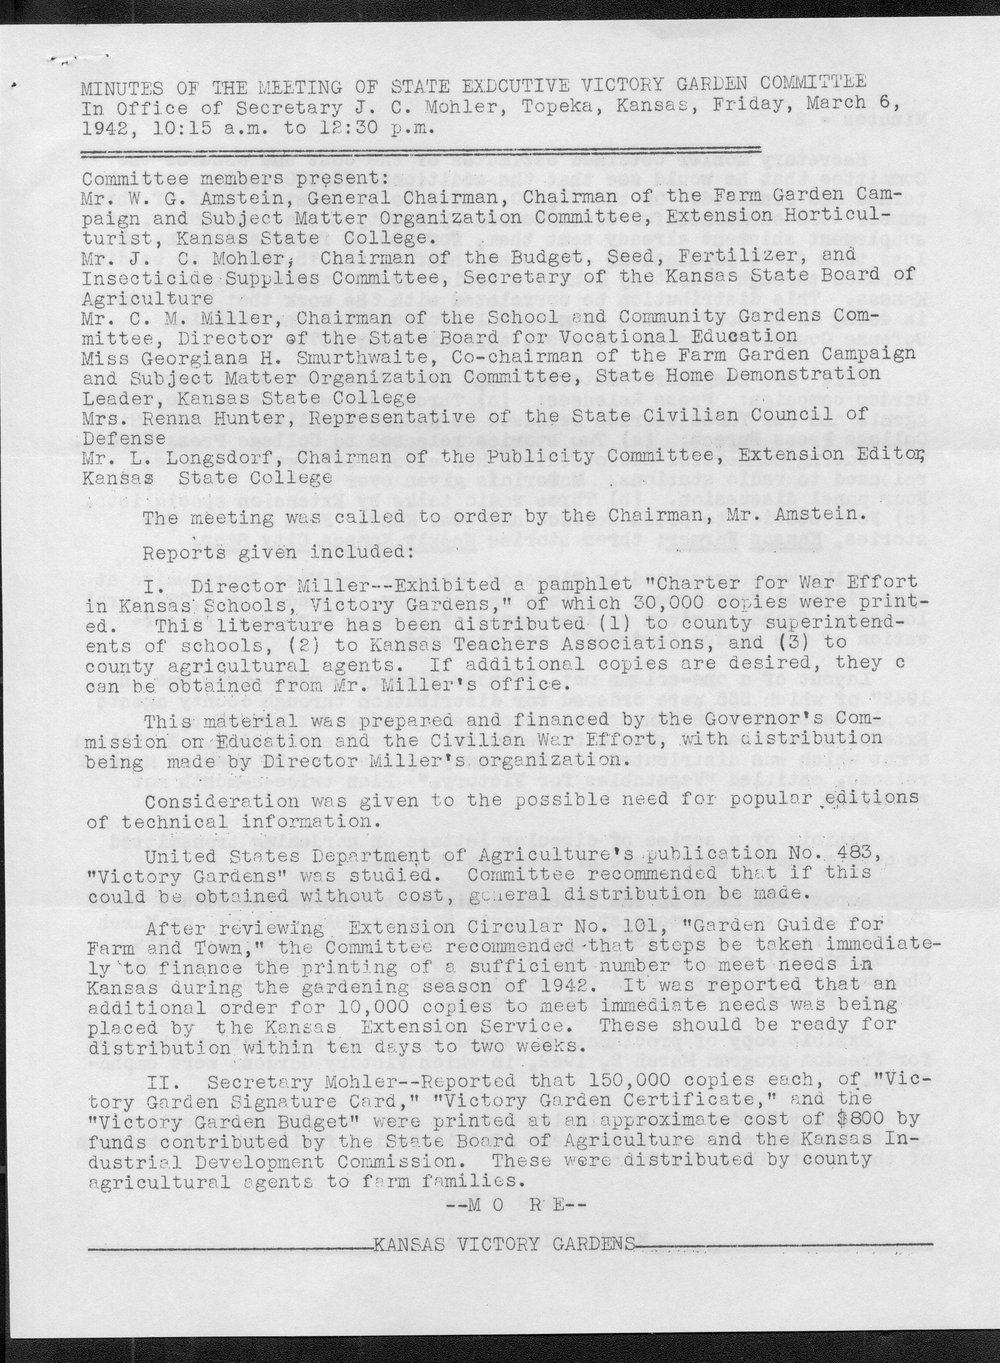 Minutes of the meeting of State Executive Victory Garden Committee - 1